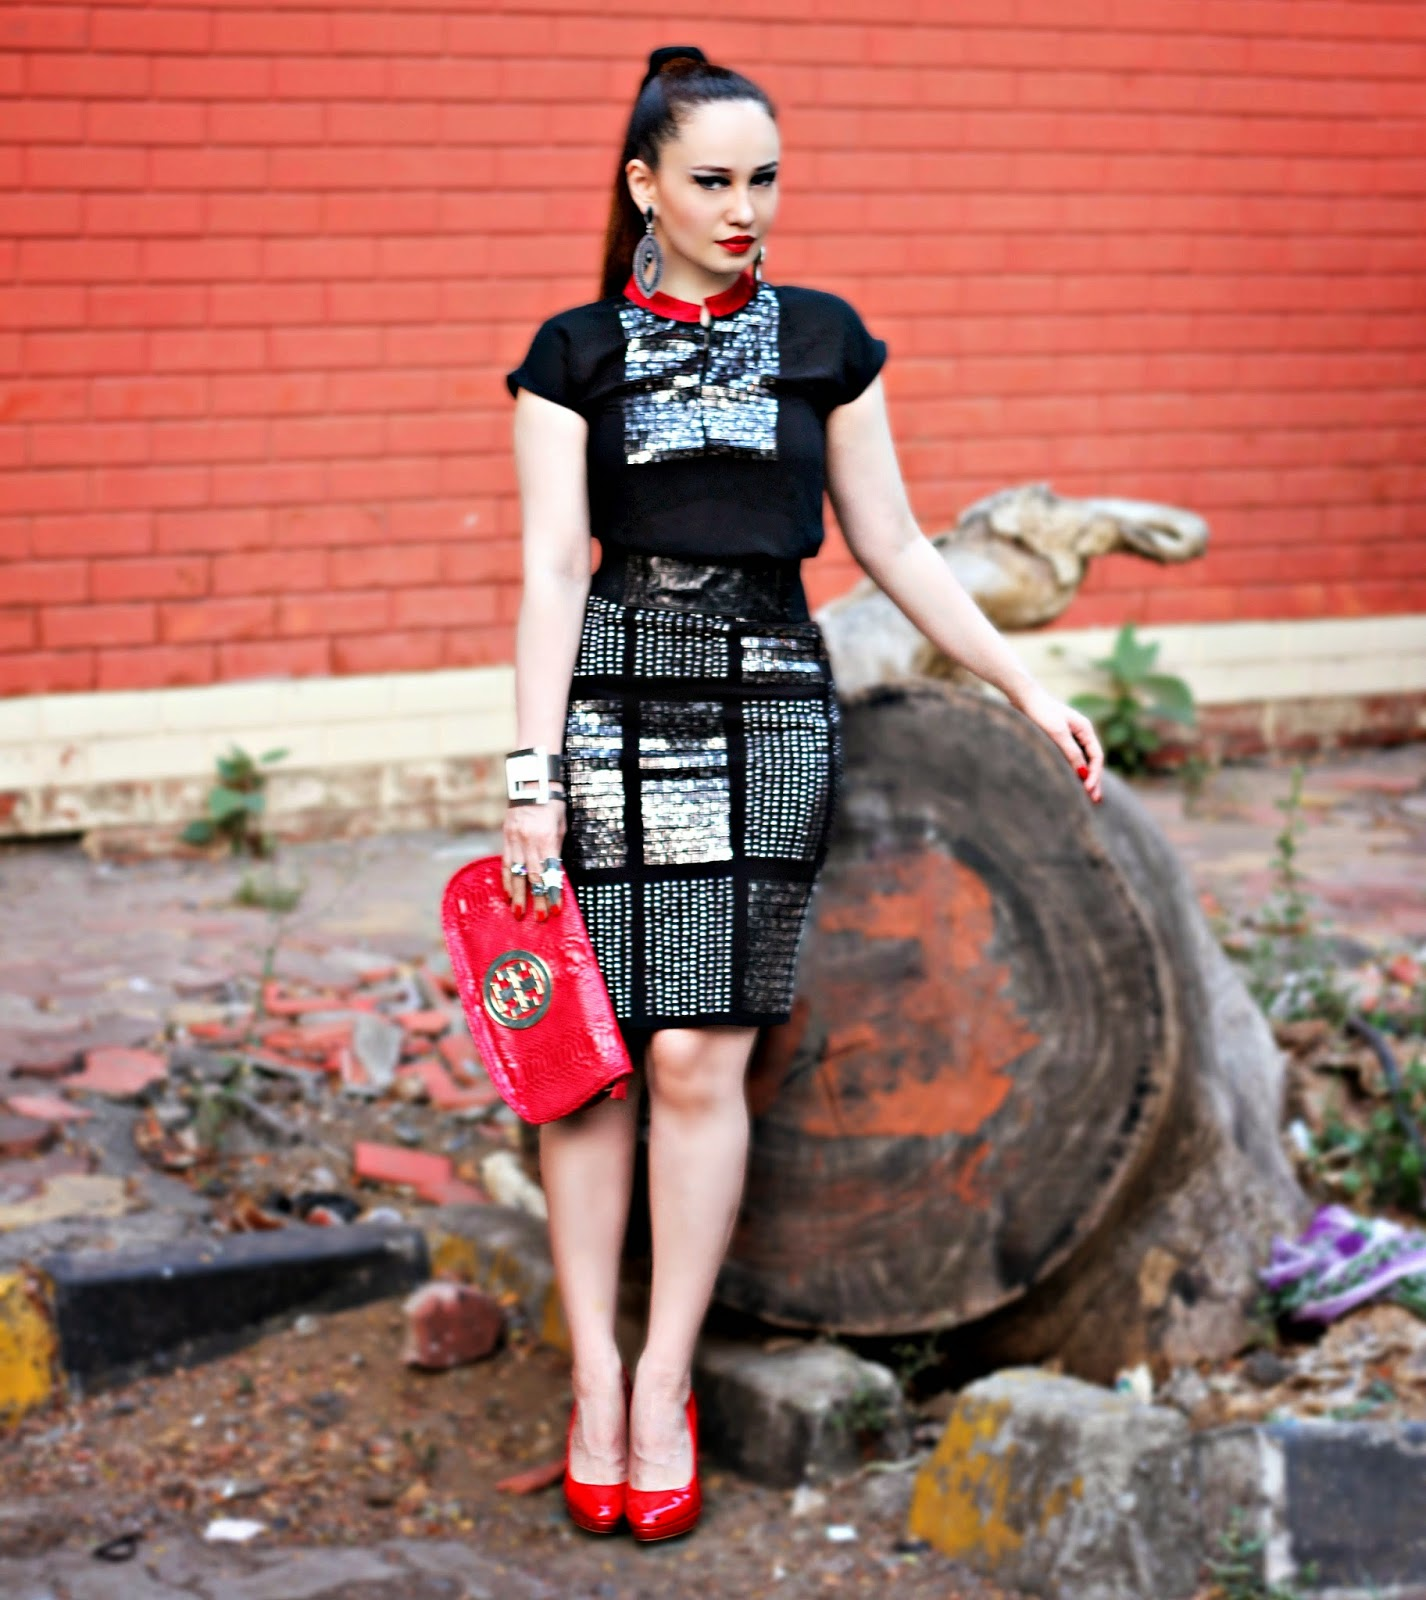 Vero Moda Marquee Black& Red Sequin Top & Black Sequin Skirt